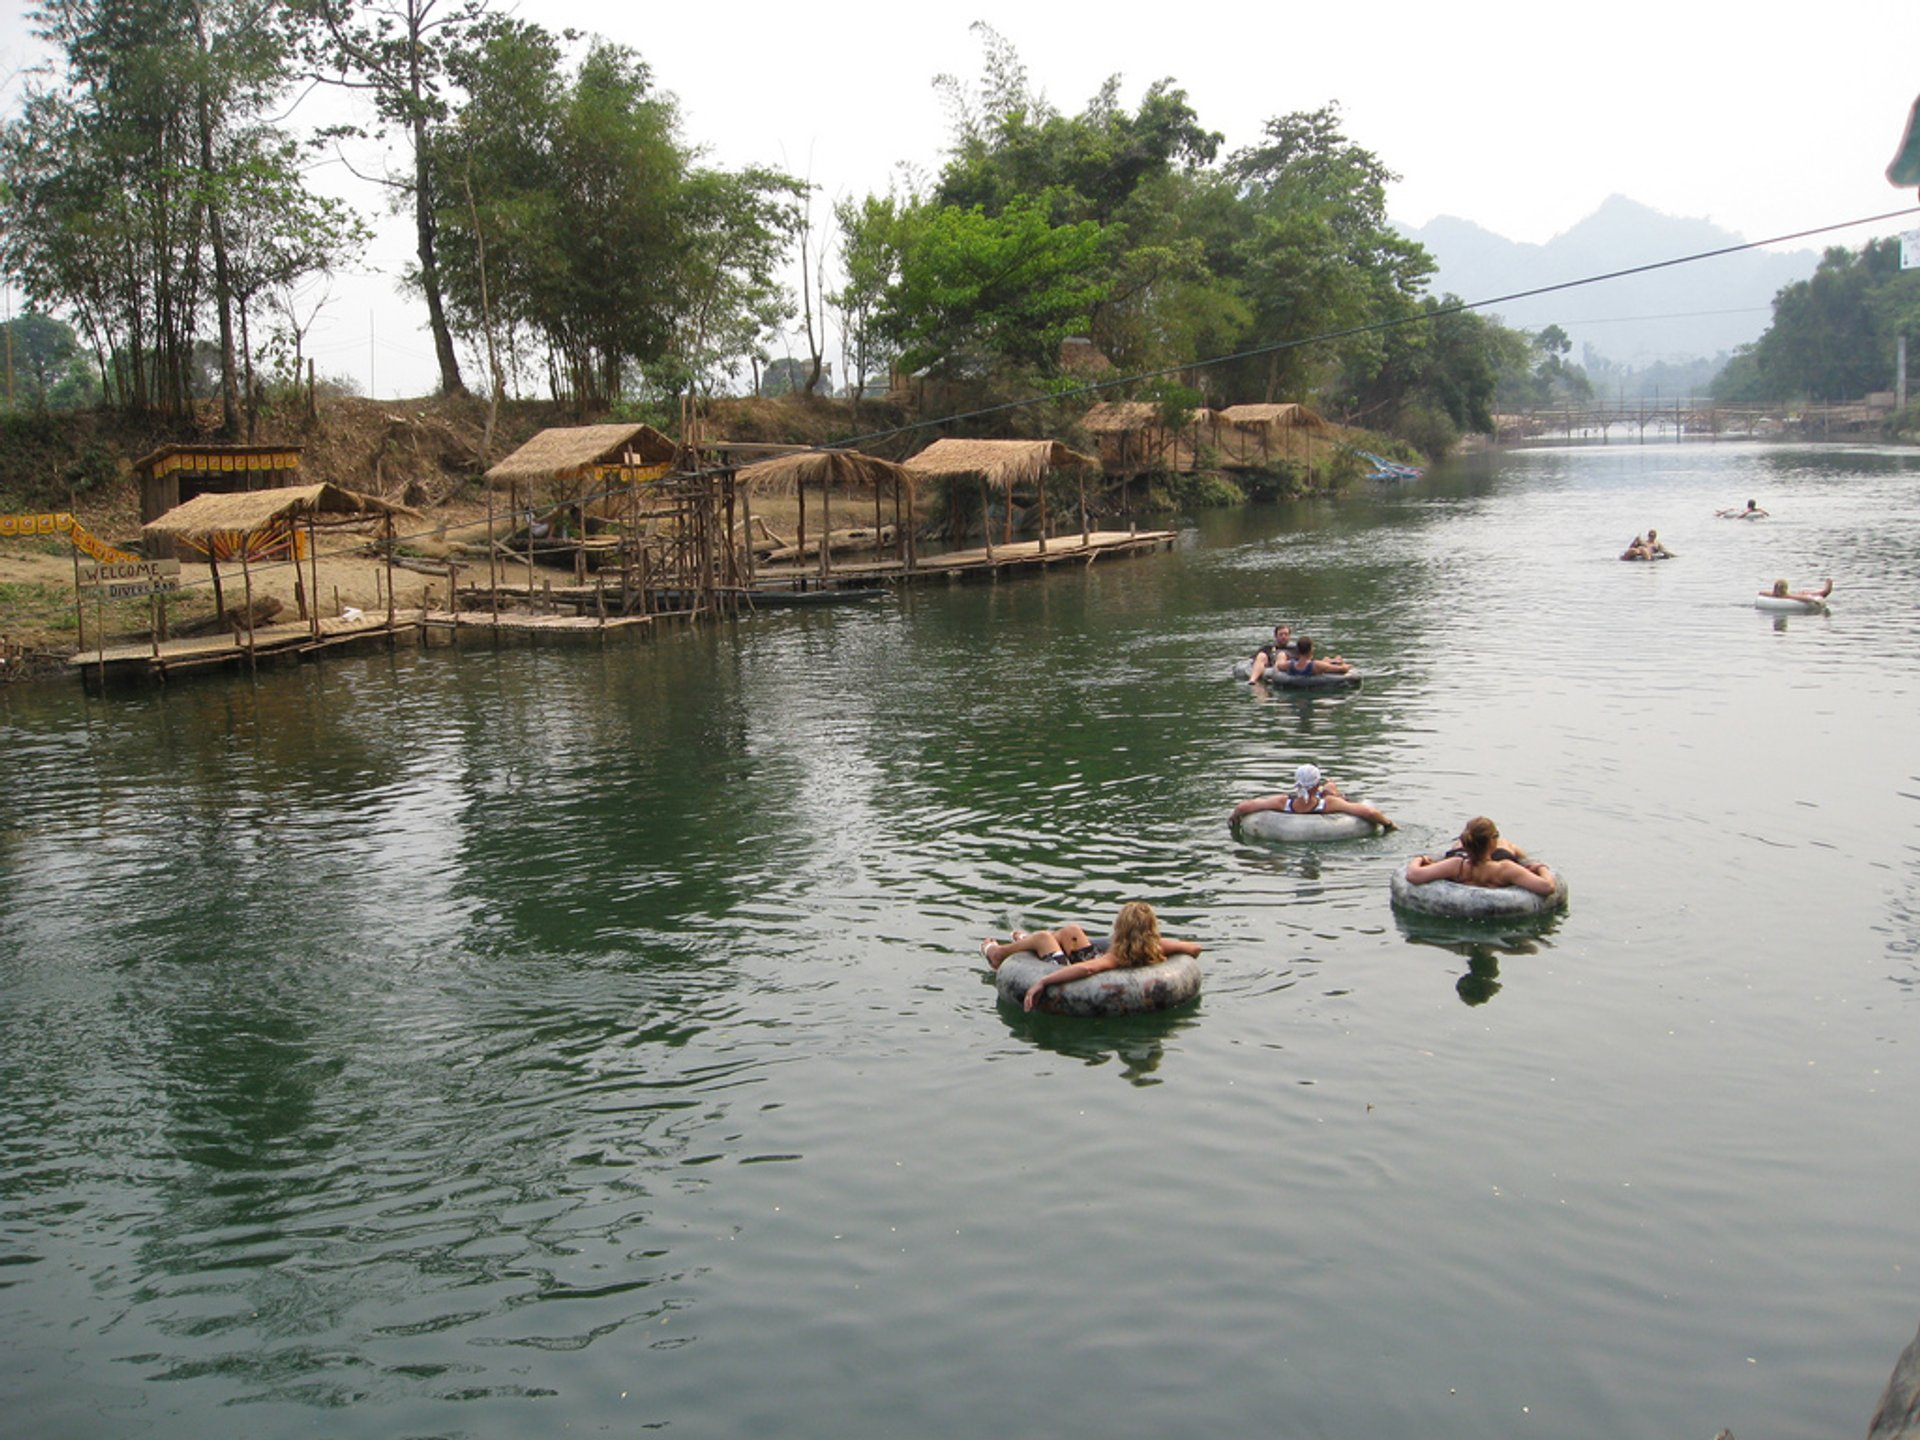 Tubing in Laos 2020 - Best Time